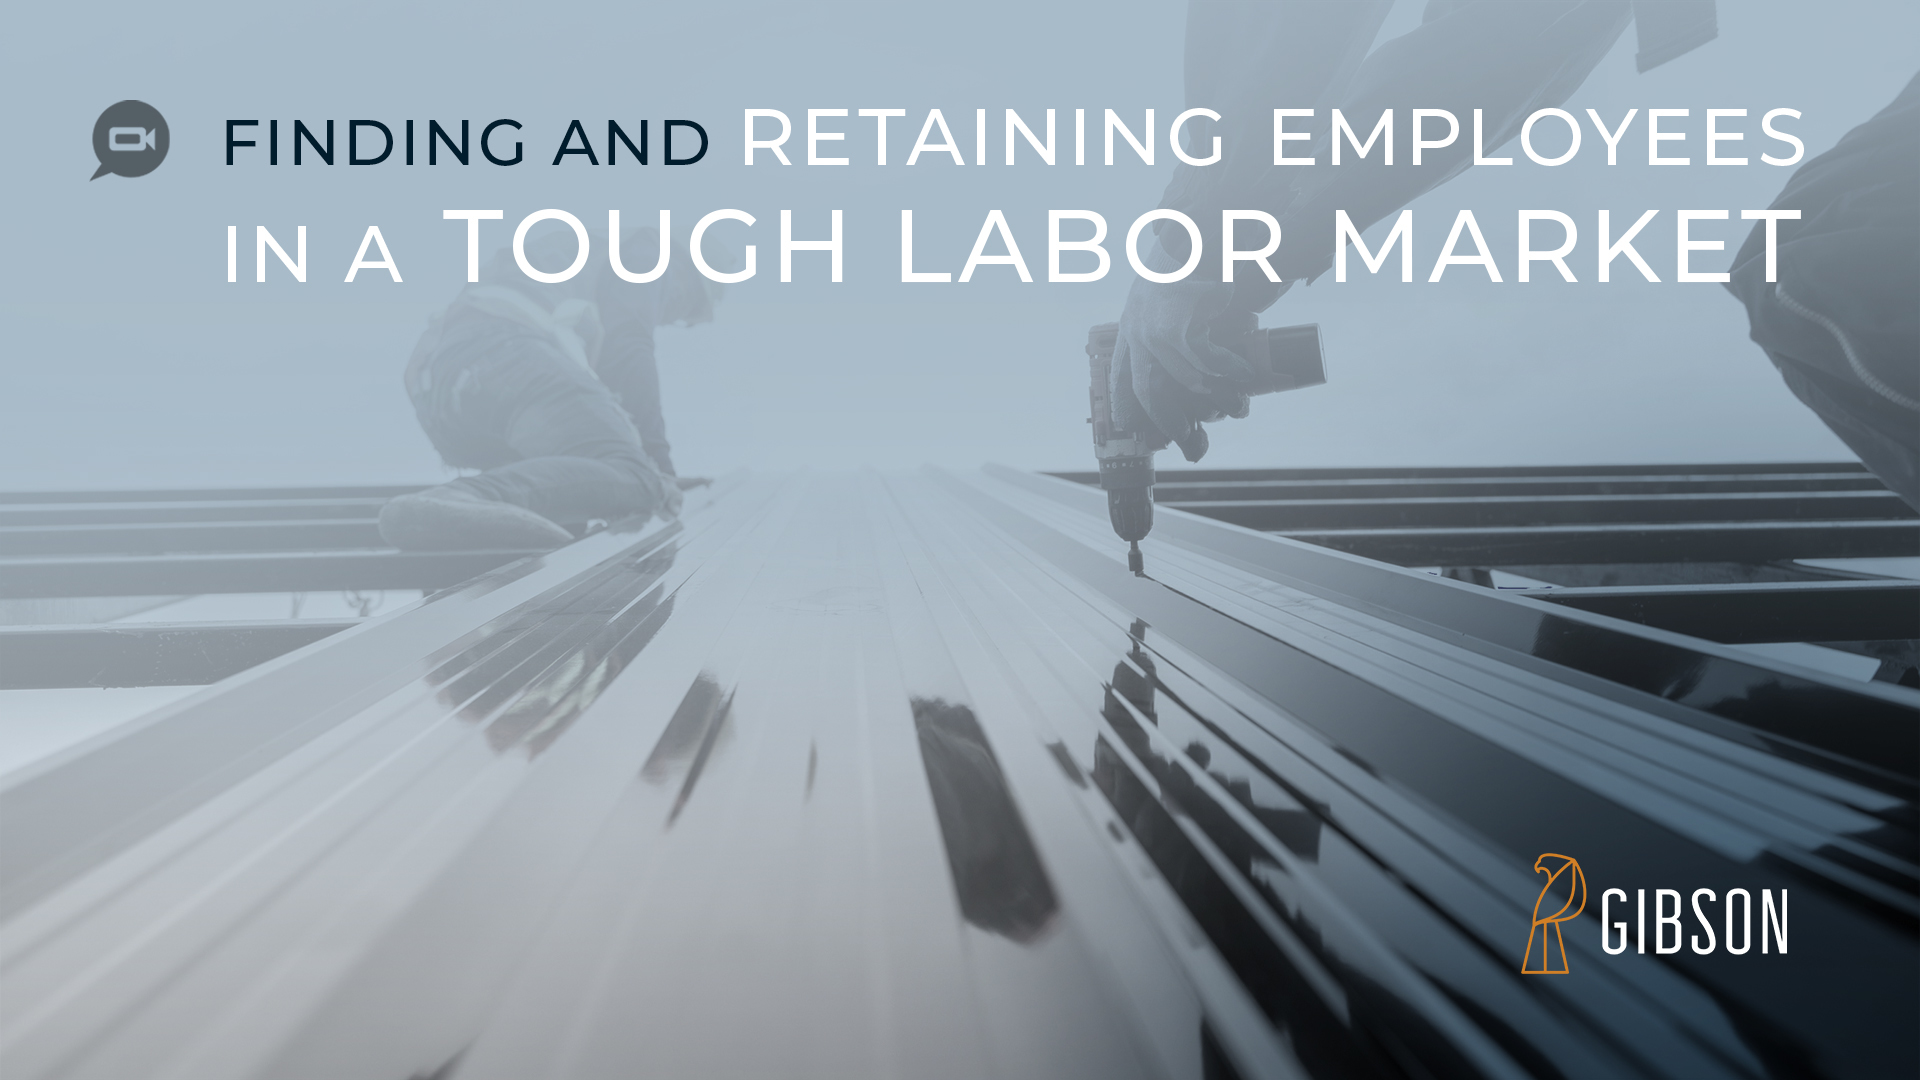 Finding and Retaining Employees in a Tough Labor Market